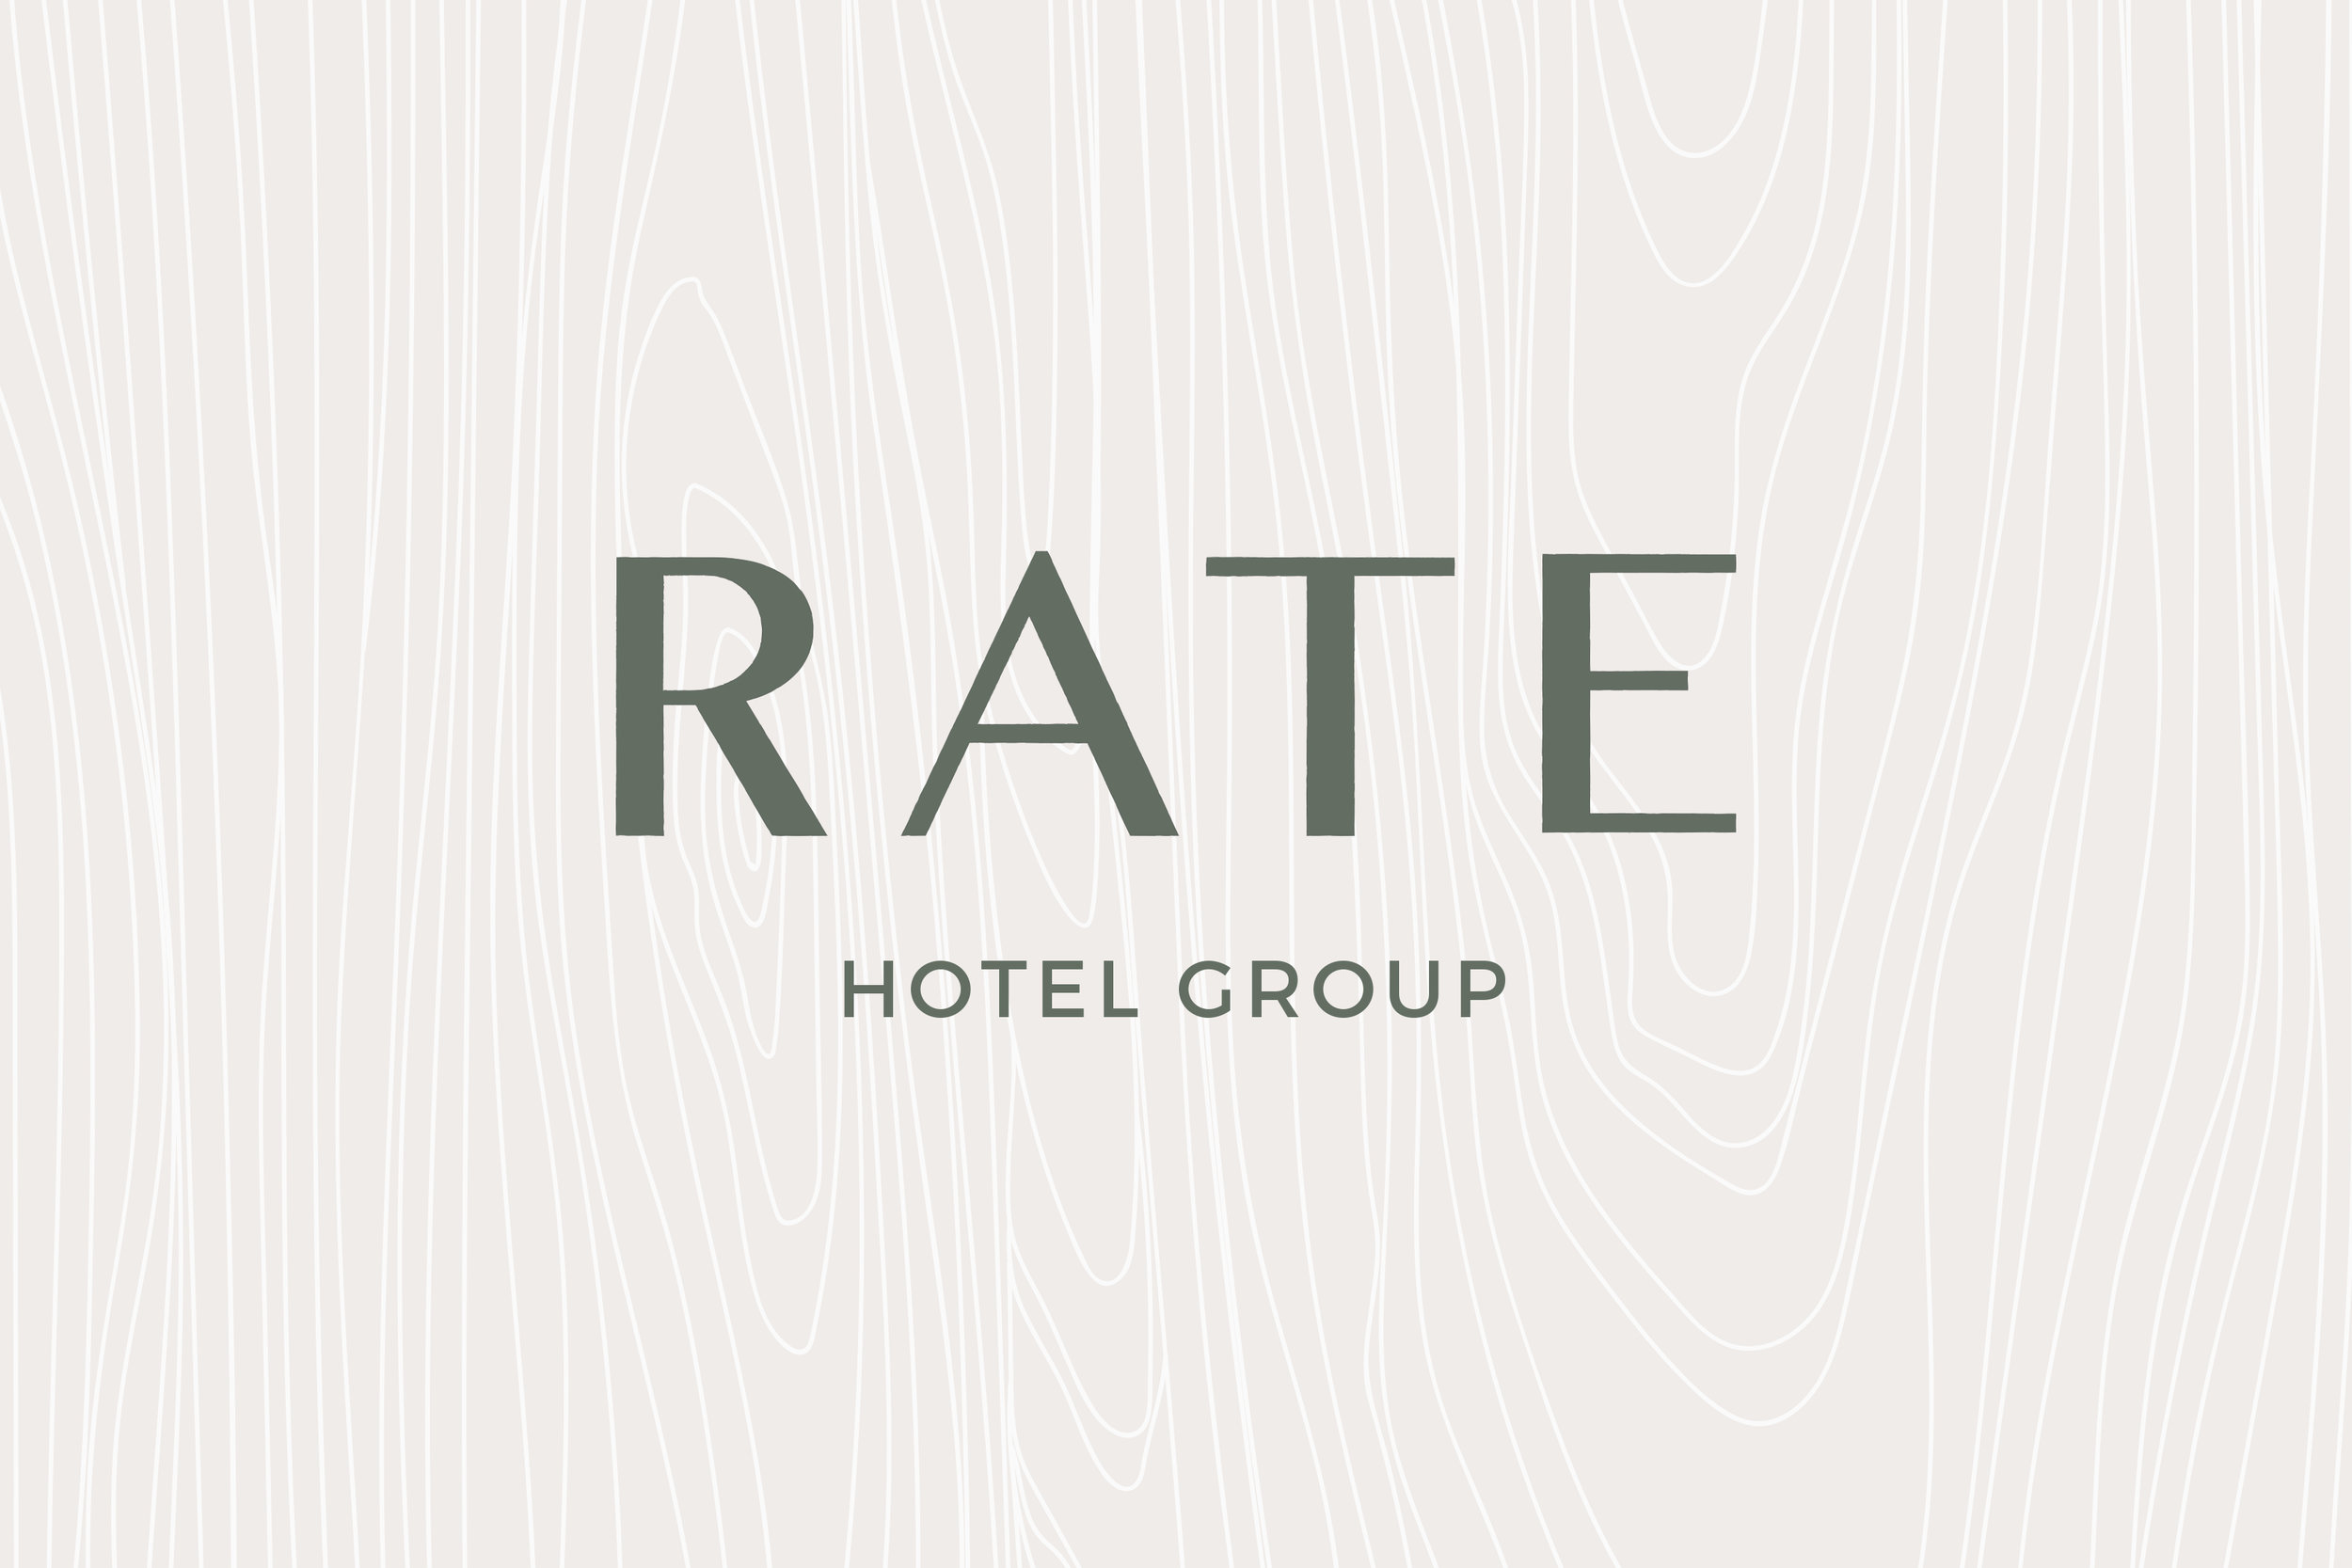 RATE Hotel Group Brand Design: Logo Design   Reux Design Co.   Boutique Branding Studio for Holistic and Conscious Small Businesses